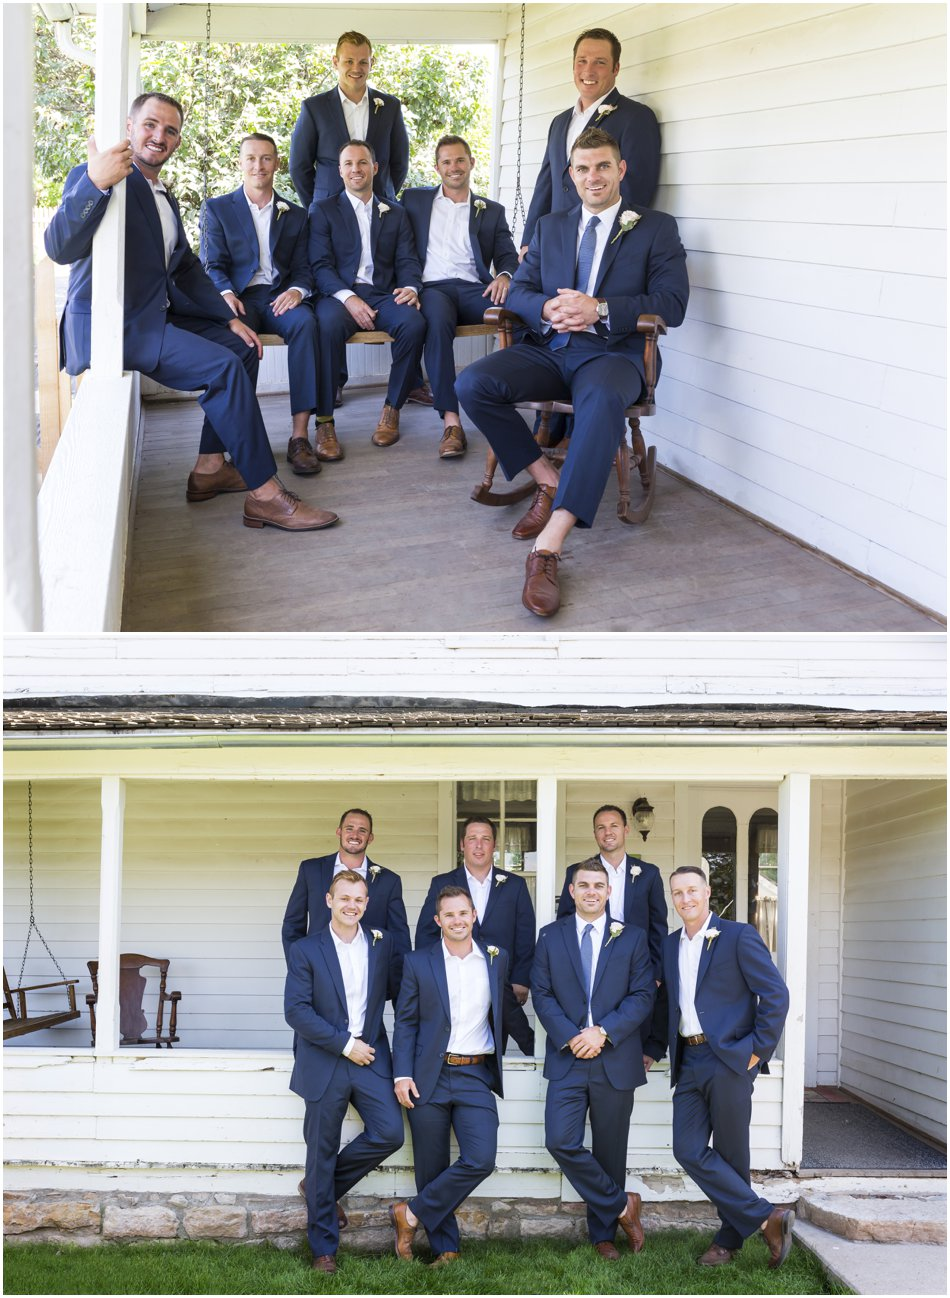 Chatfield Botanic Gardens Wedding | Breanna and Cody's Chatfield Botanic Gardens Wedding_0020